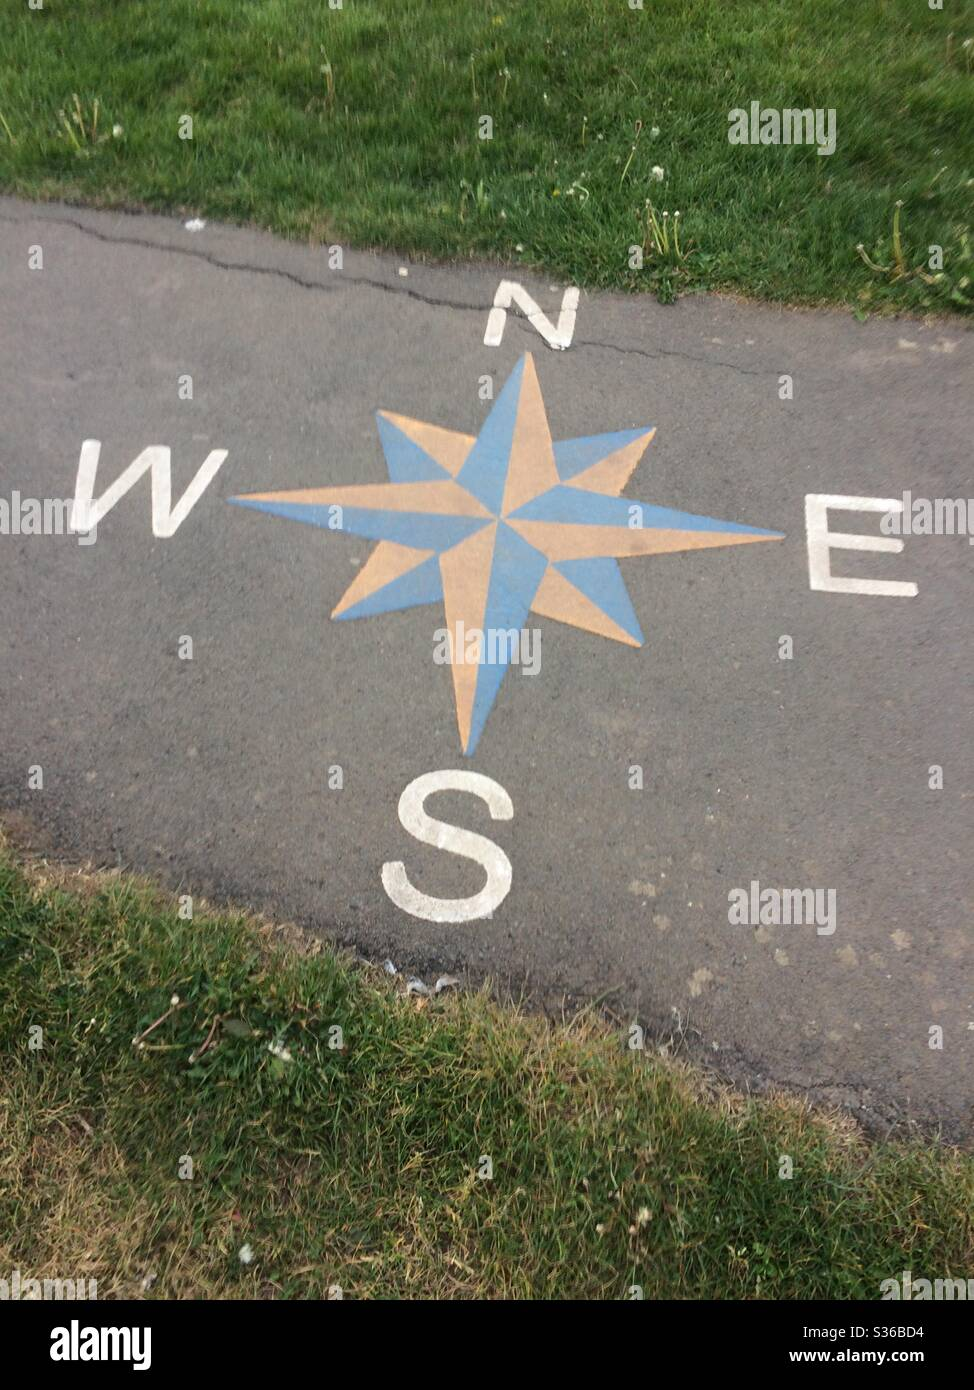 Compass points painted on footpath in play park in Stockton on Tees, England, UK Stock Photo